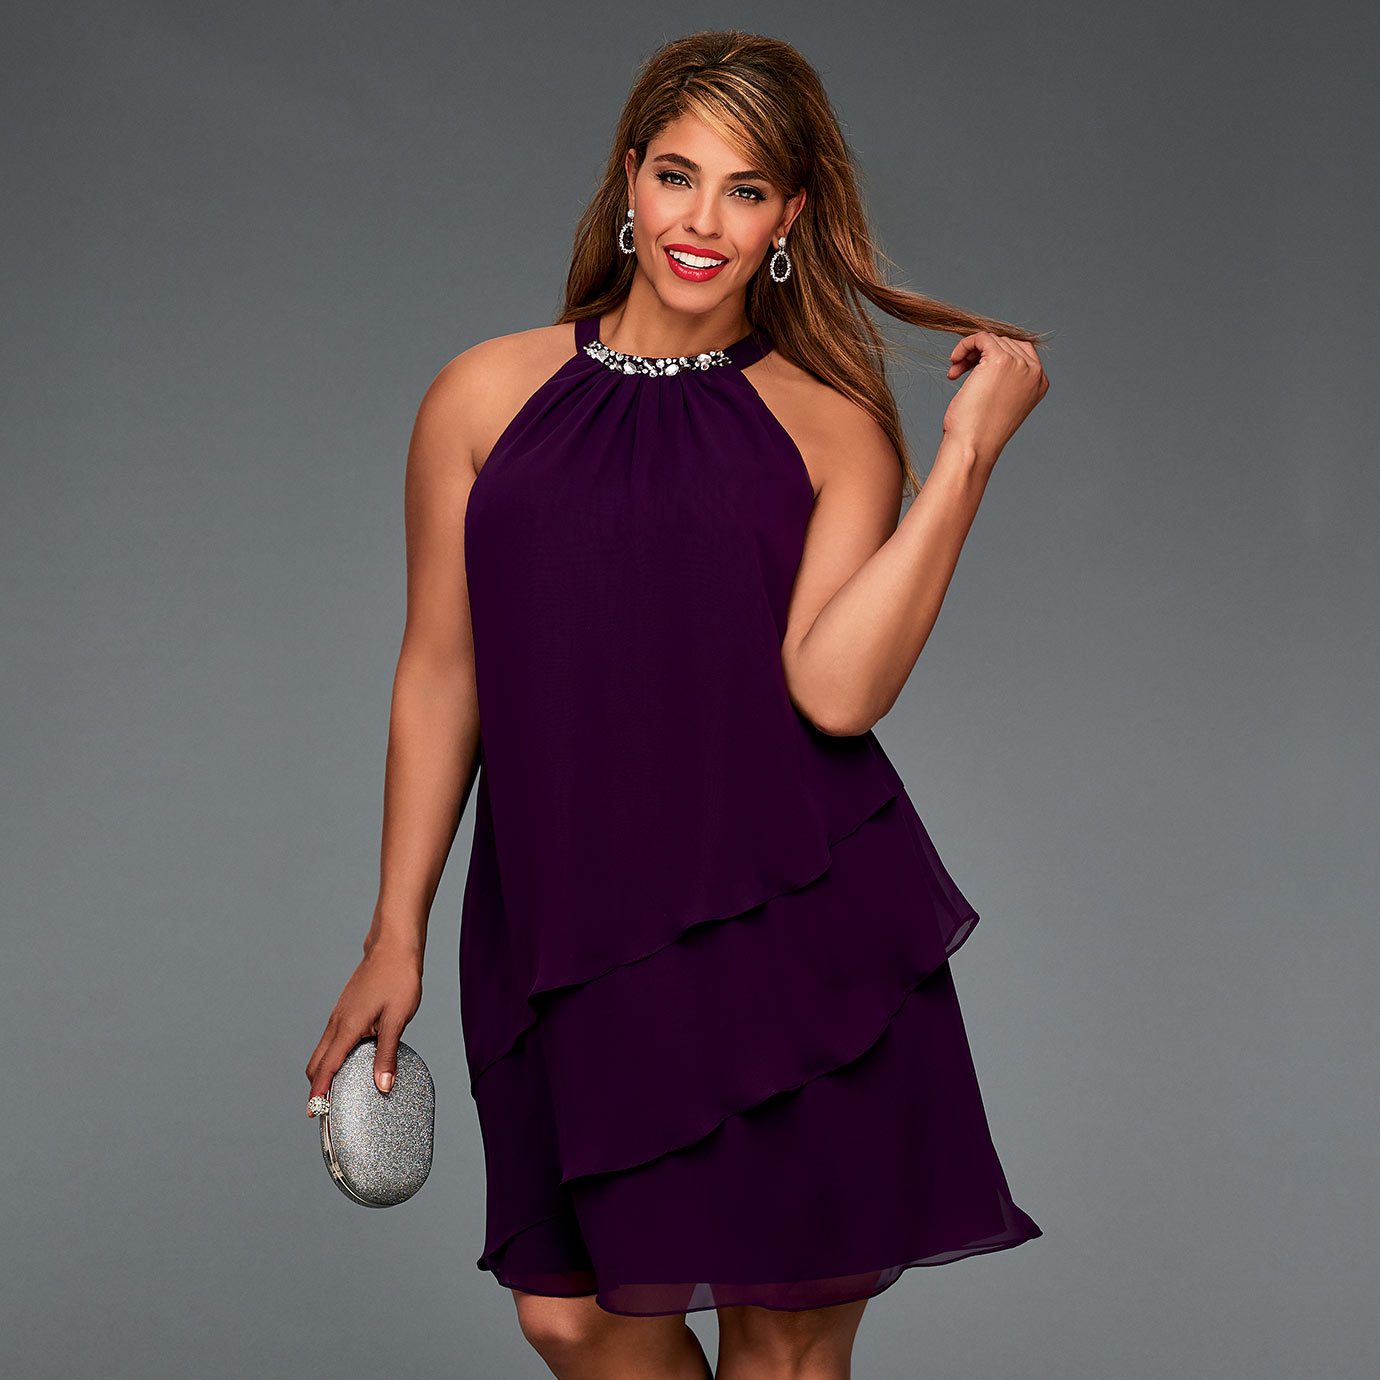 Laura clothing online shopping